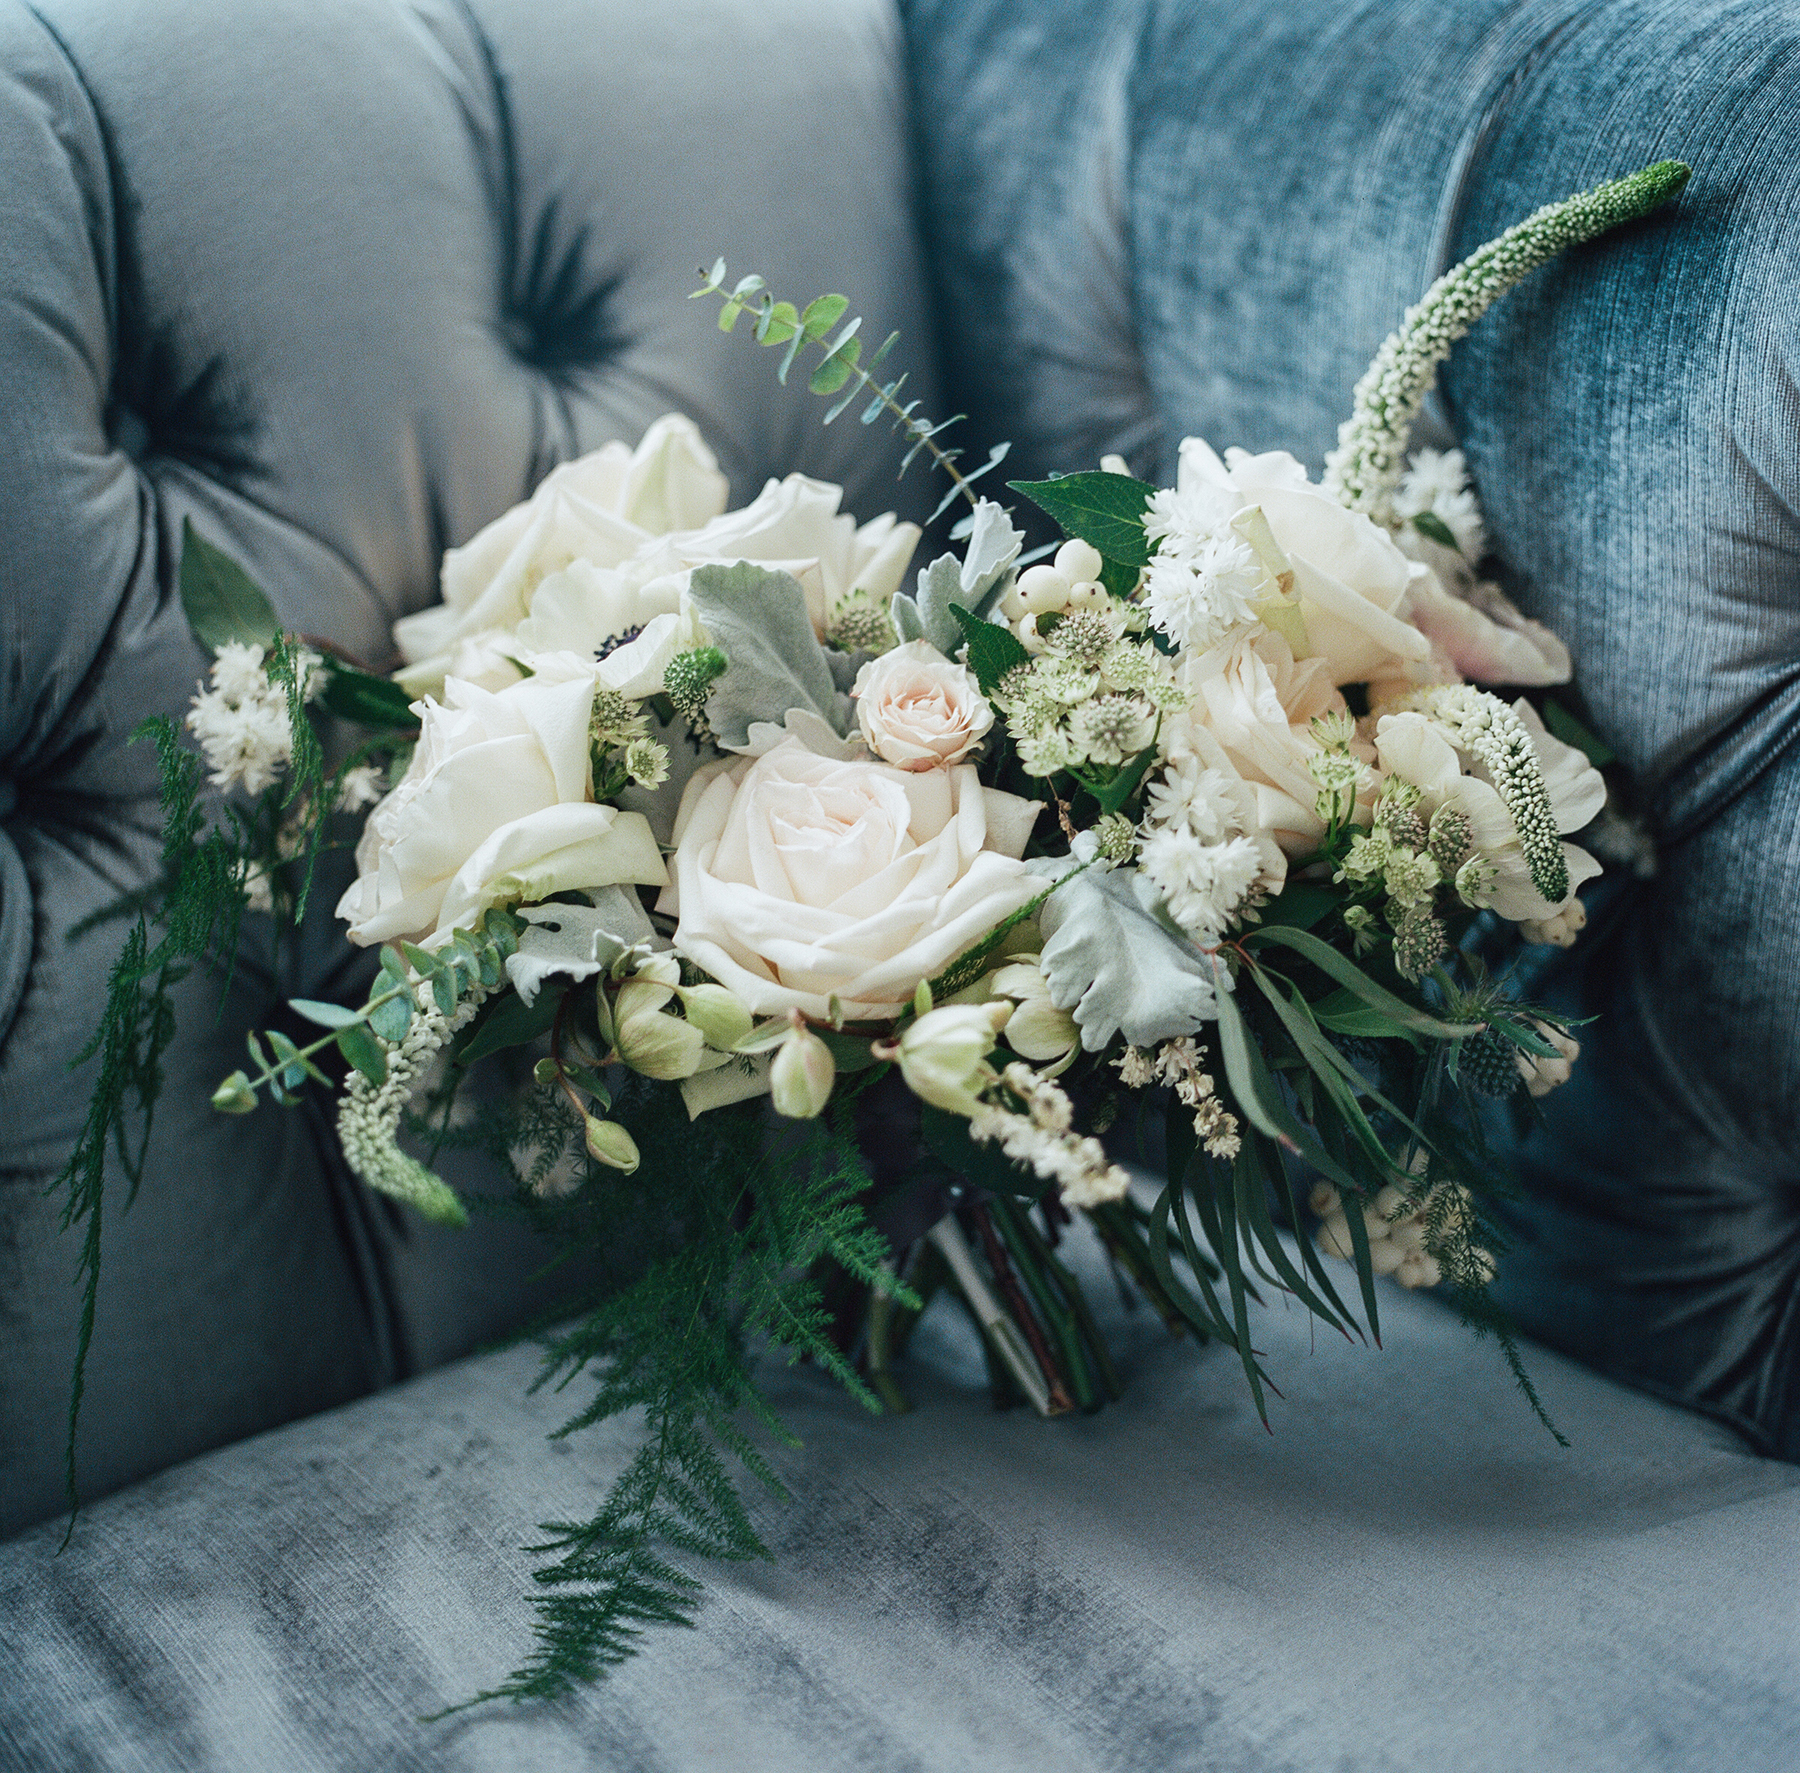 jett-walker-photography-wedding-bouquet-laurel-greene.jpg